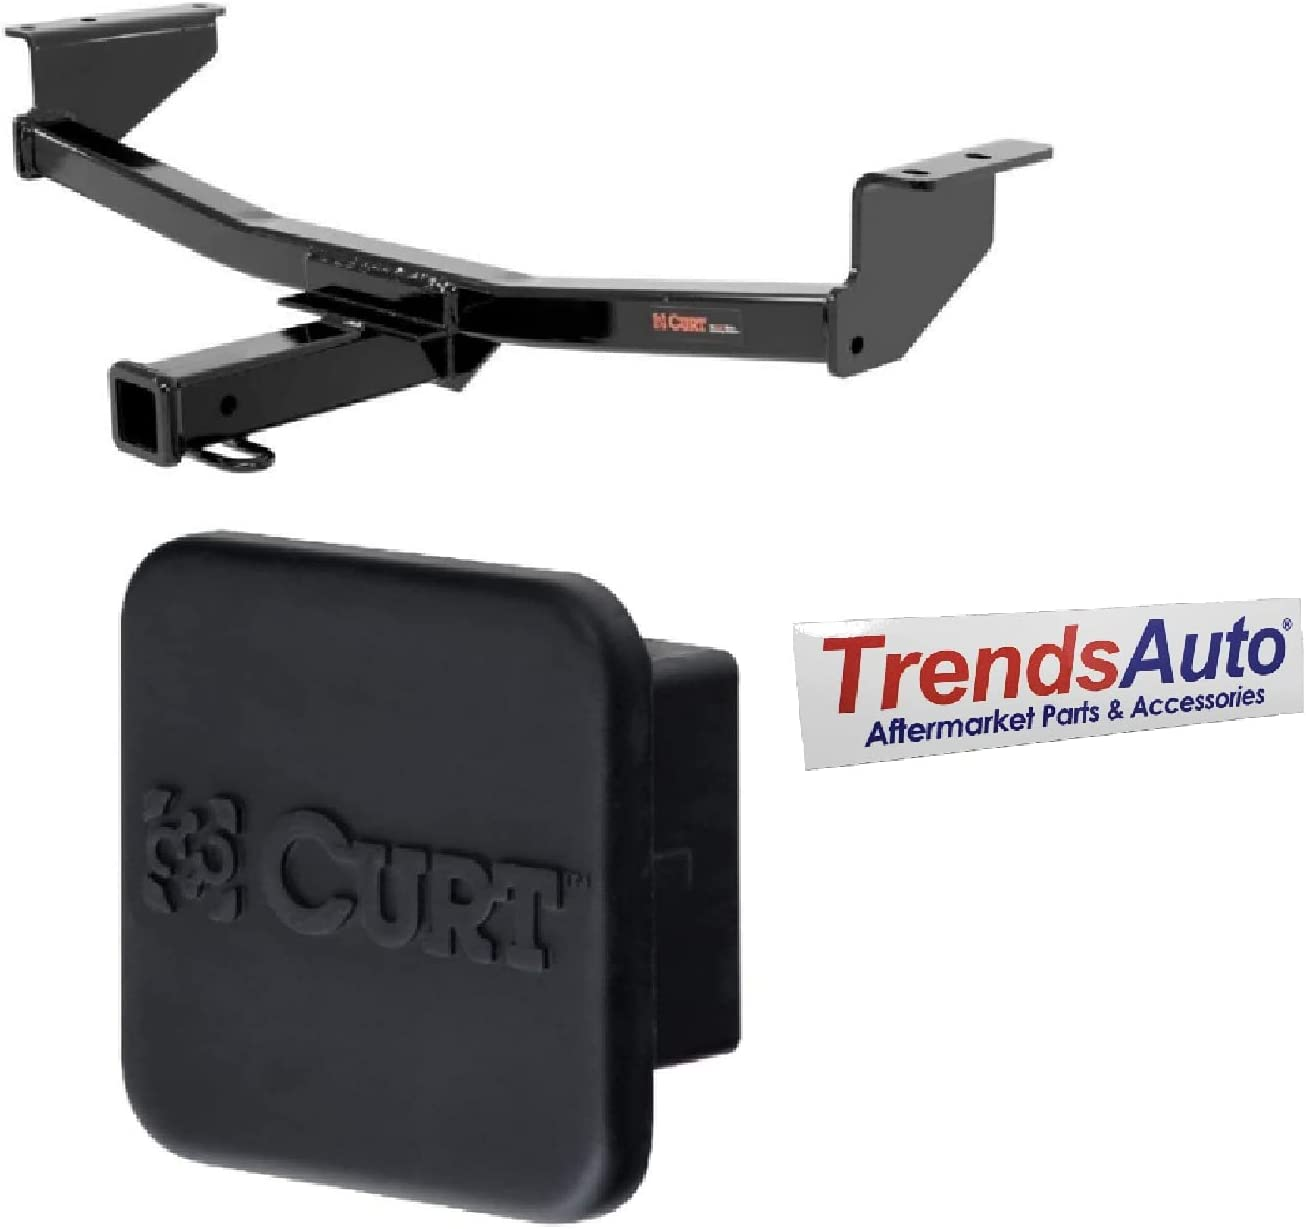 Curt 13204 22272 Class 35% OFF Easy-to-use 3 Trailer 2 Receiver Inch with and Hitch